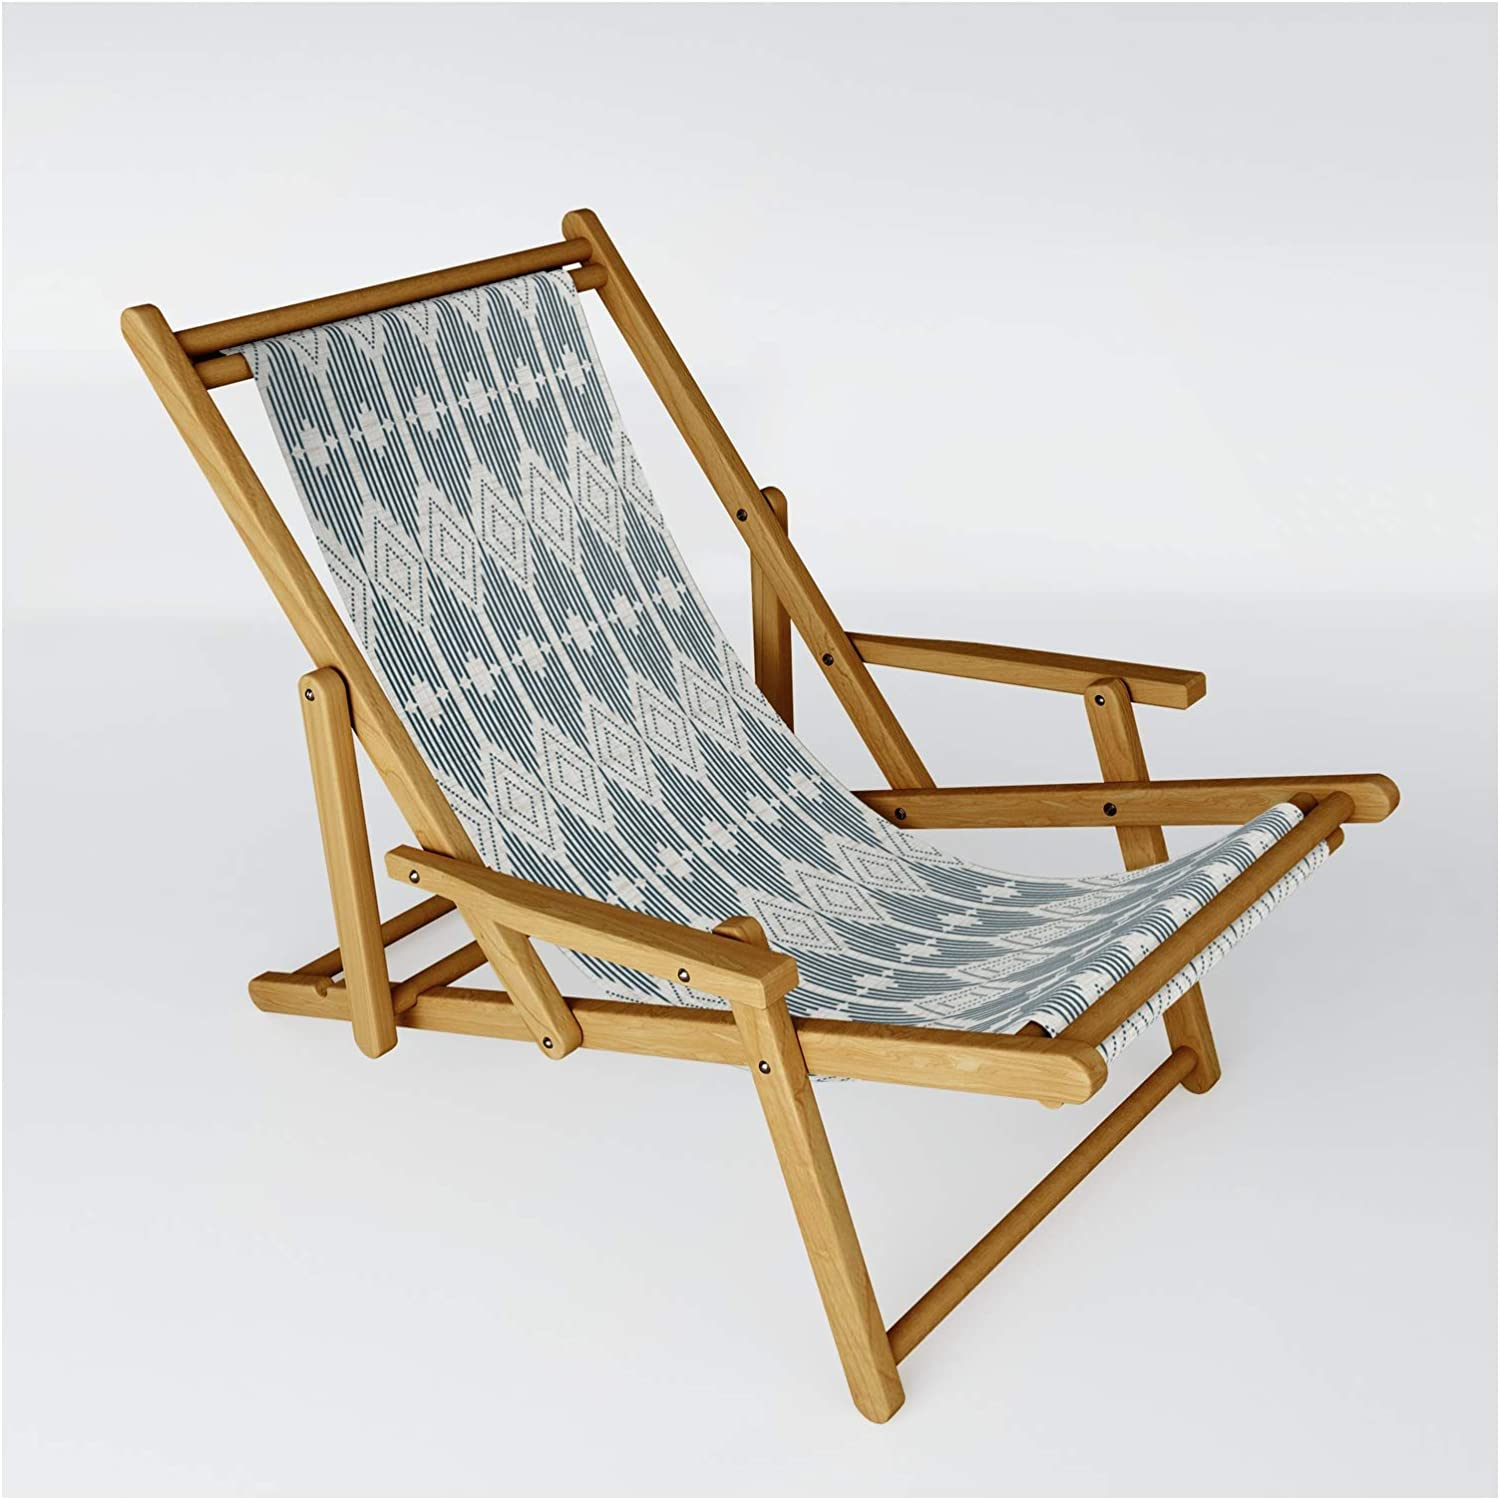 Society6 Popular overseas West End - Linen by One Super popular specialty store Chair on Dutton Heather Sling